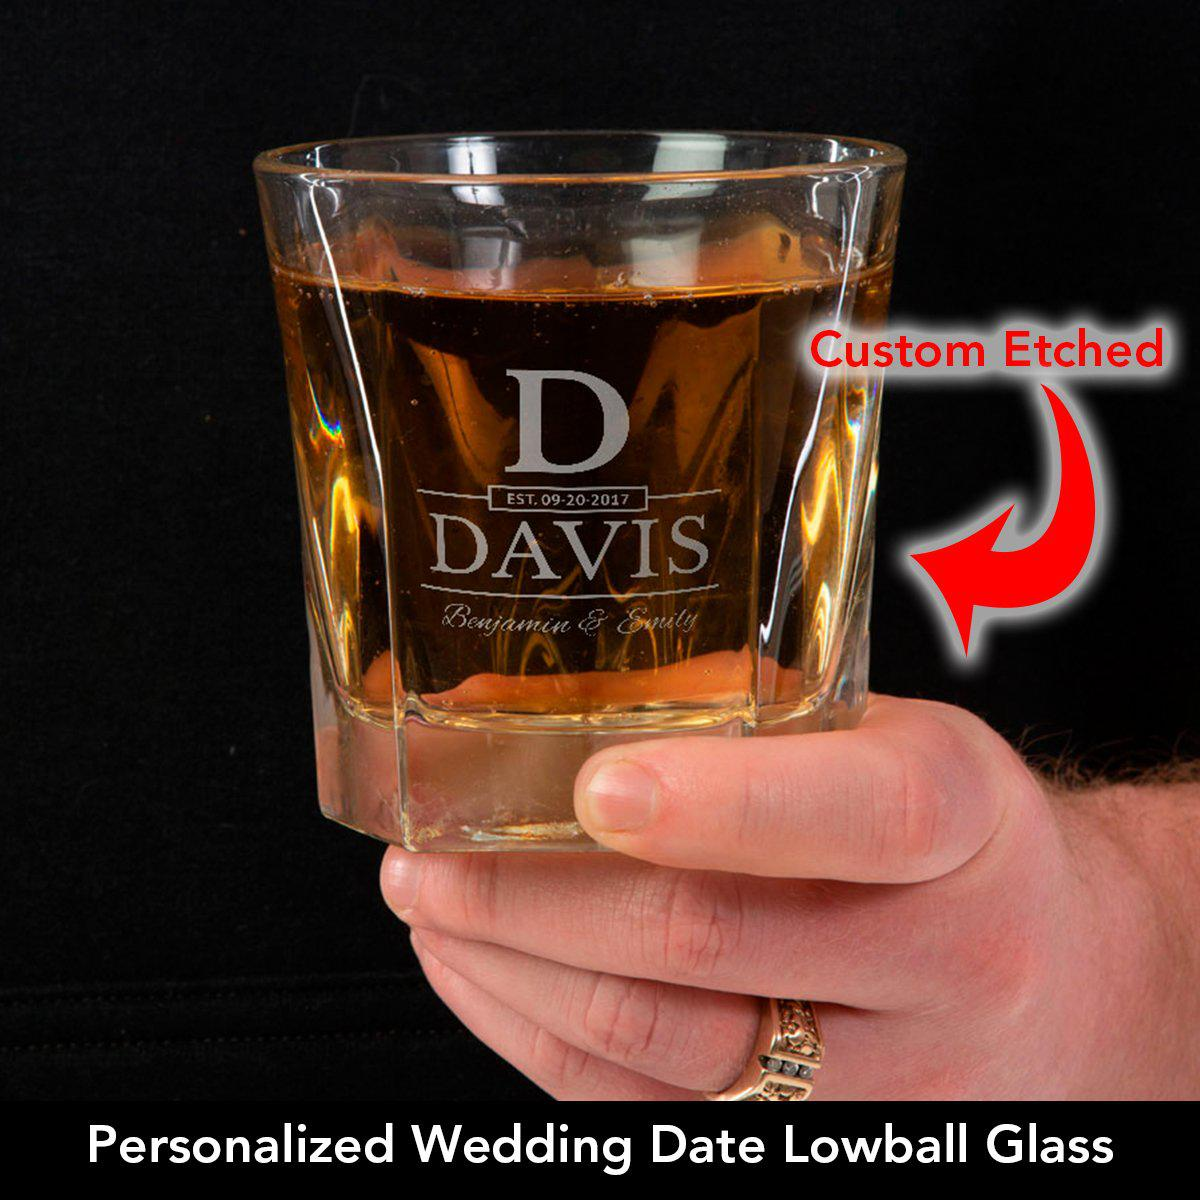 Wedding Date - Personalized Lowball Glass